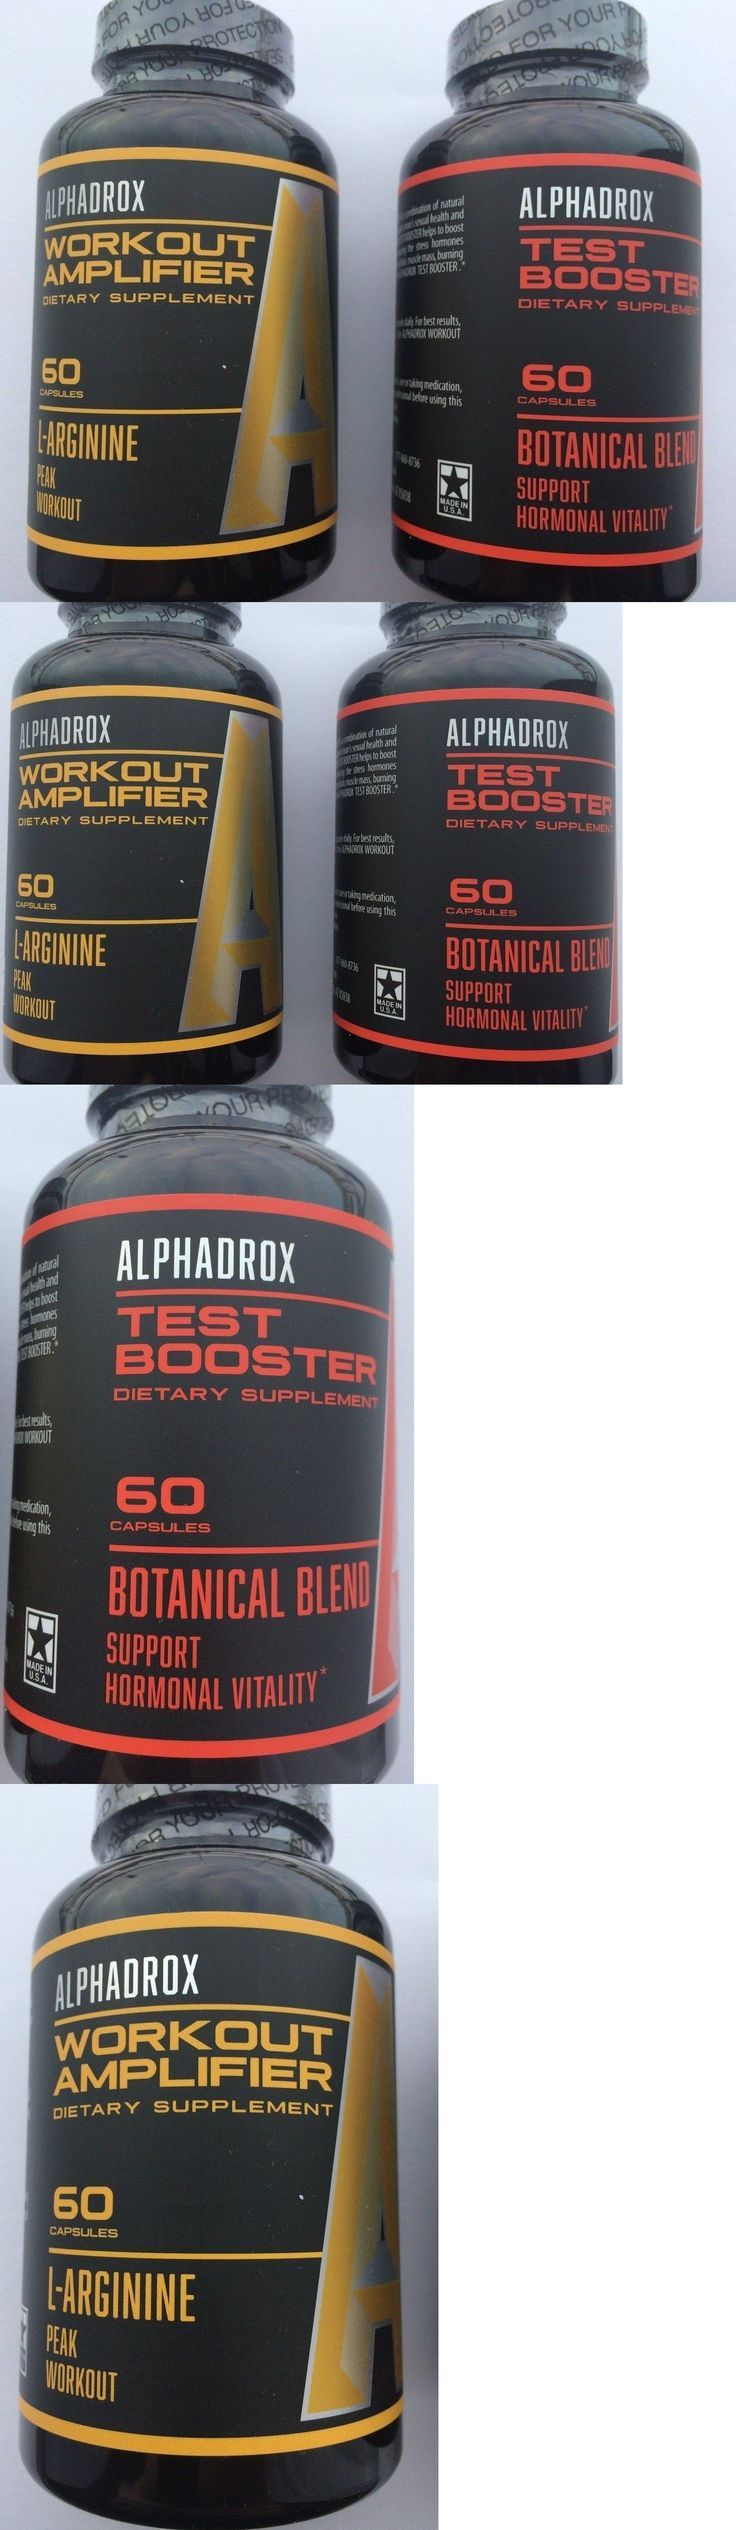 [FREE TRAIL] [Alpha Monster Advanced - Best Testosterone Booster] - http://www.usatimeoffer.com/AlphaMonsterAdvanced/sports-vitamins-and-minerals-alphadrox-workout-amplifier-testosterone-booster/ -  As men get older, testosterone levels begin to drop. Alpha Monster Advanced is a safe way to boost free testosterone and burn fat. Almost every man can benefit from a boost in free testosterone to intensify his experience in the gym and in the bedroom.   #AlphaMonsterAdvanced #Tes